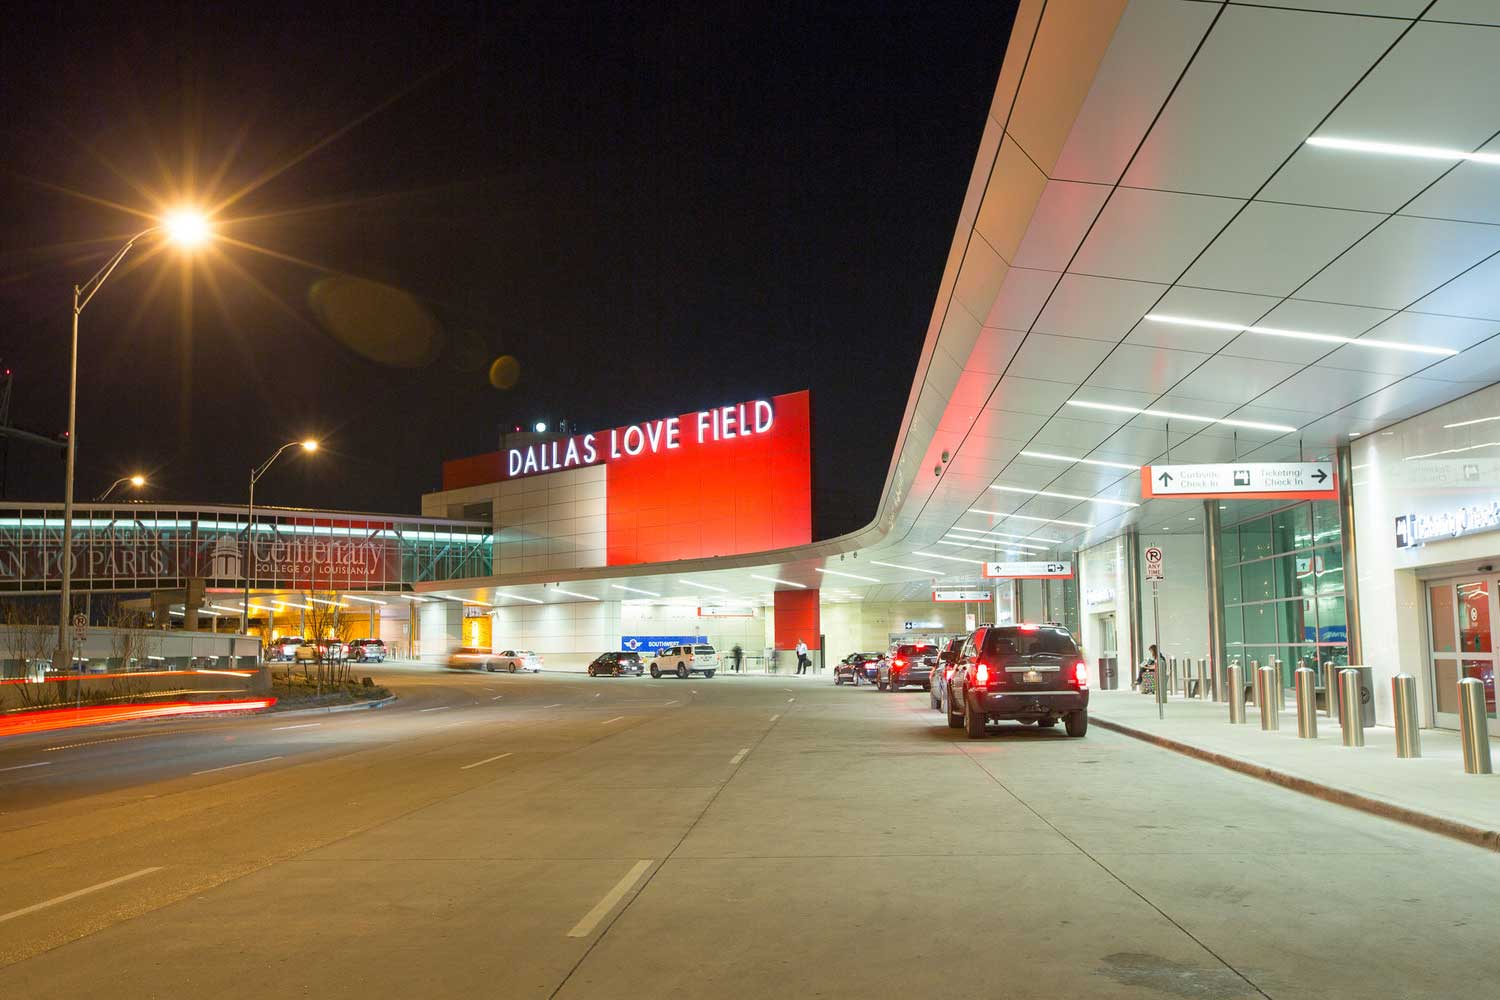 No. 6: Dallas Love FIeld (DAL)